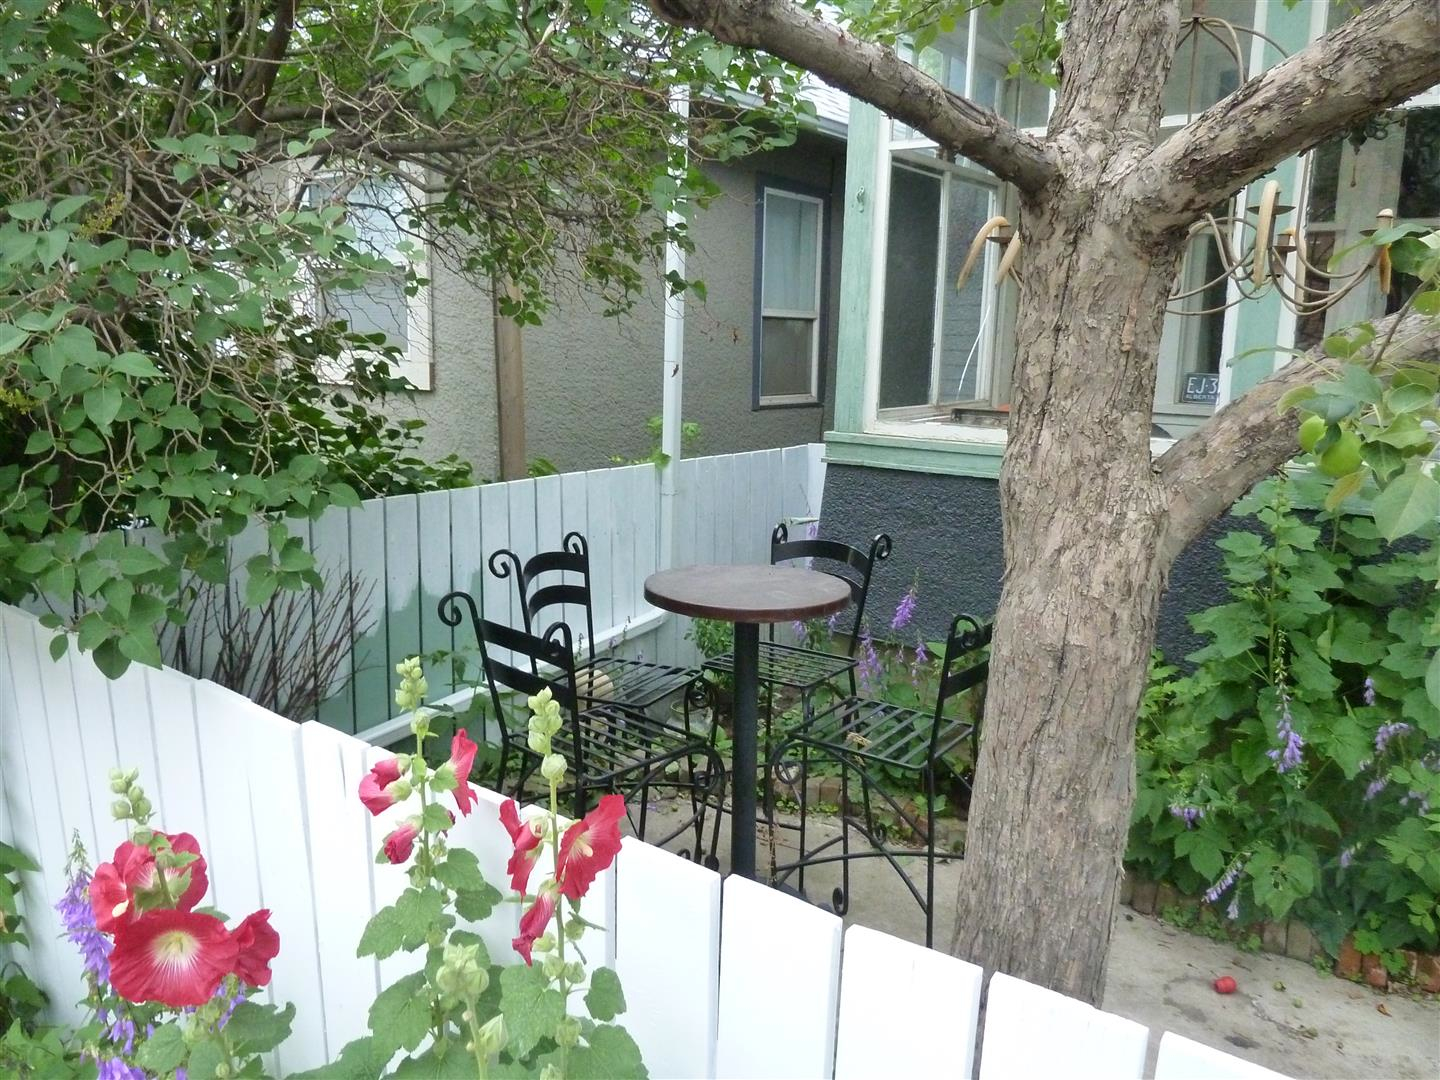 Saskatoon Urban Trekker also explored the residential streets in the area with their charming early 20th century CPR worker homes that have been adopted by artists who have added charm with front lawn patios, sculptures and murals.